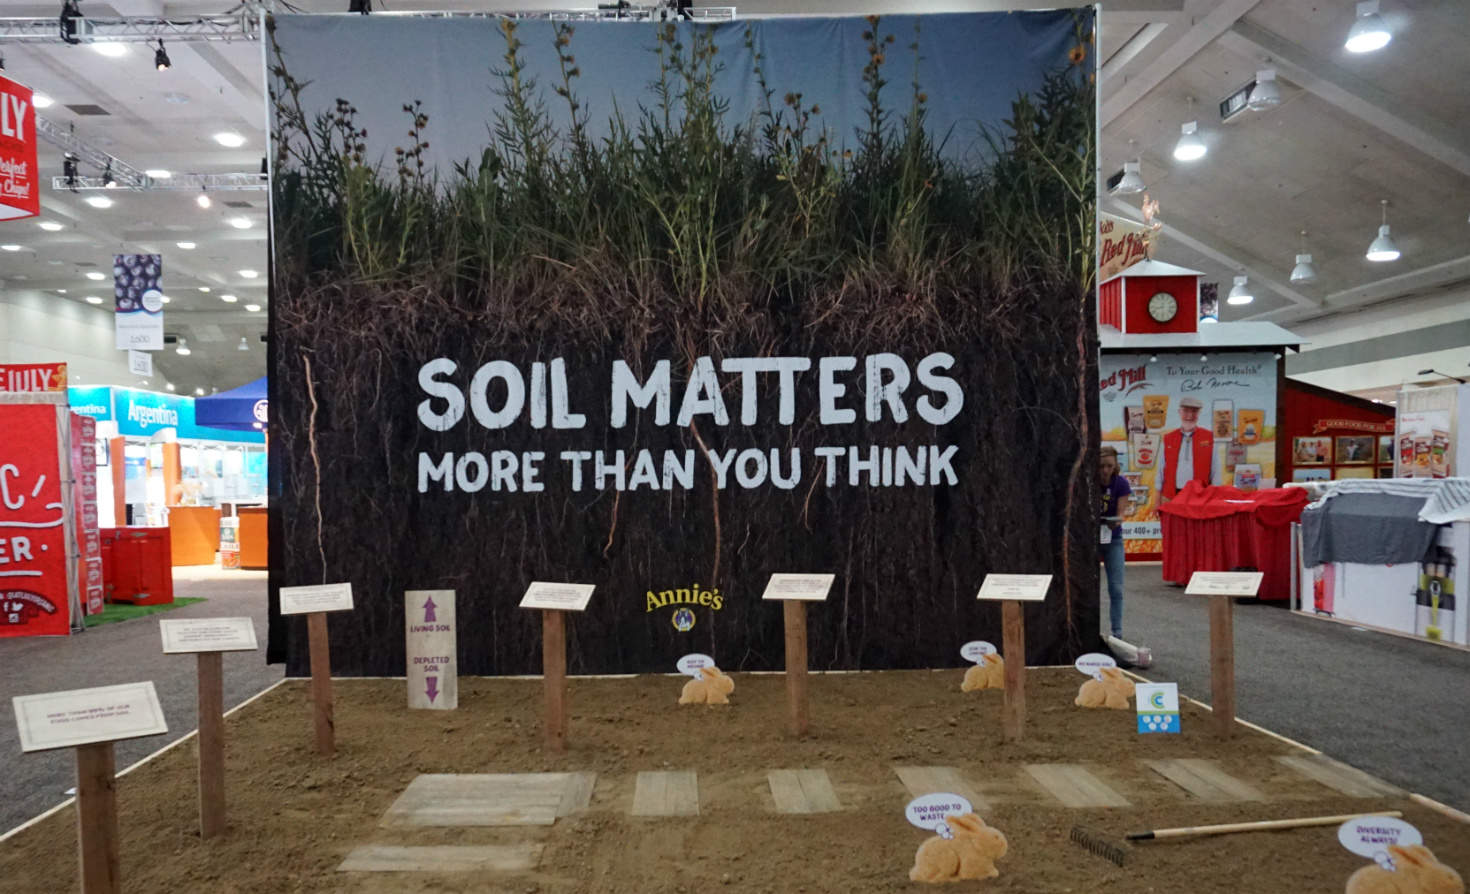 Soil matters more than you think thumbnail